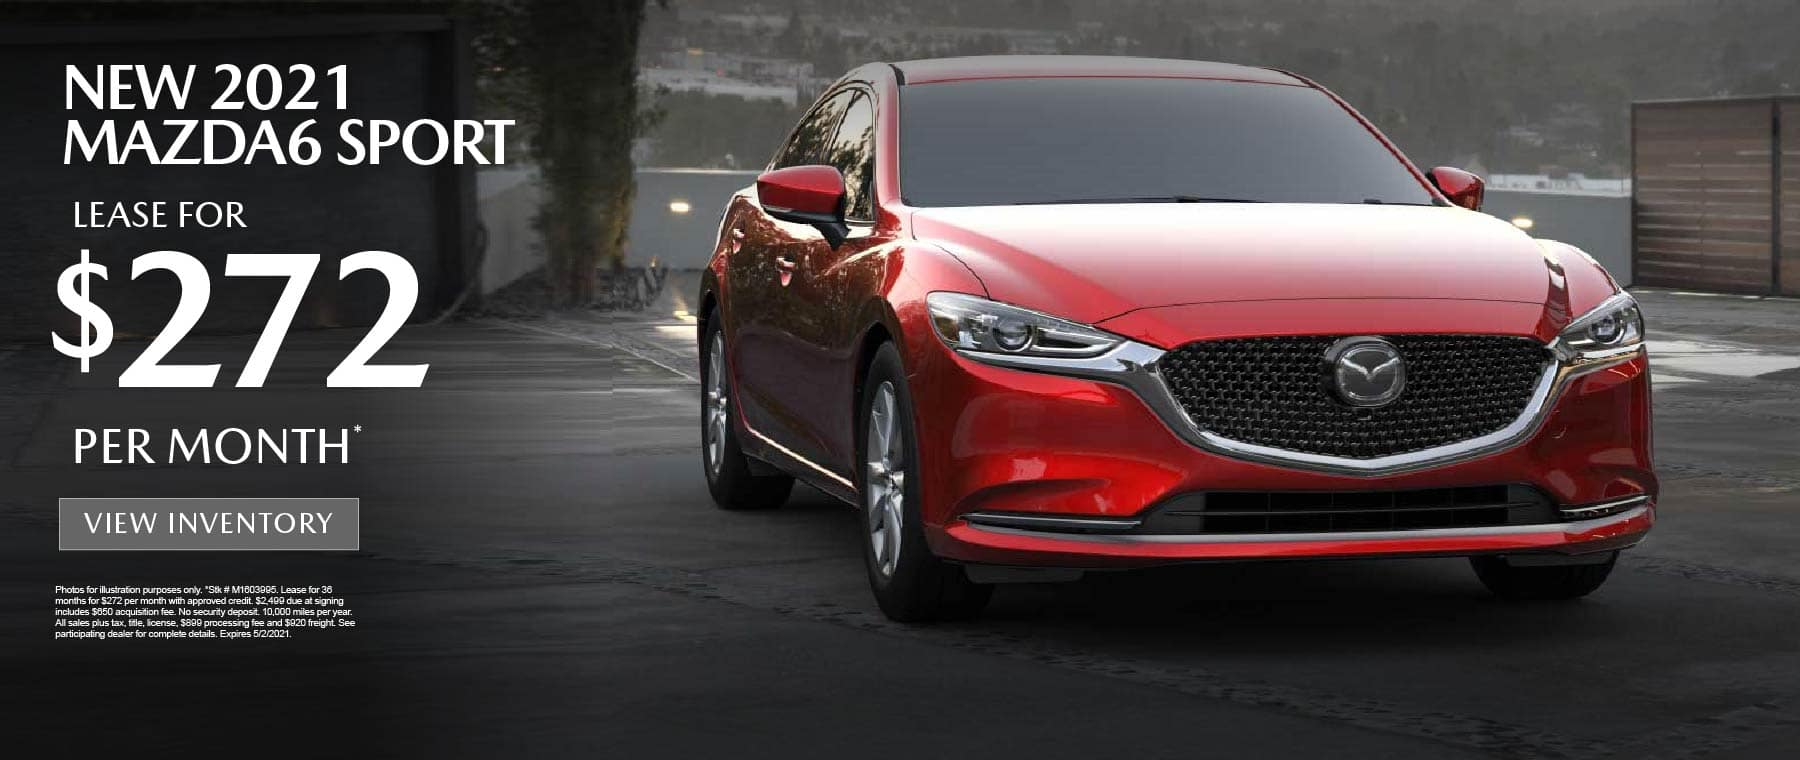 NEW 2021 MAZDA6 SPORT – Lease for $272 per month* view inventory.